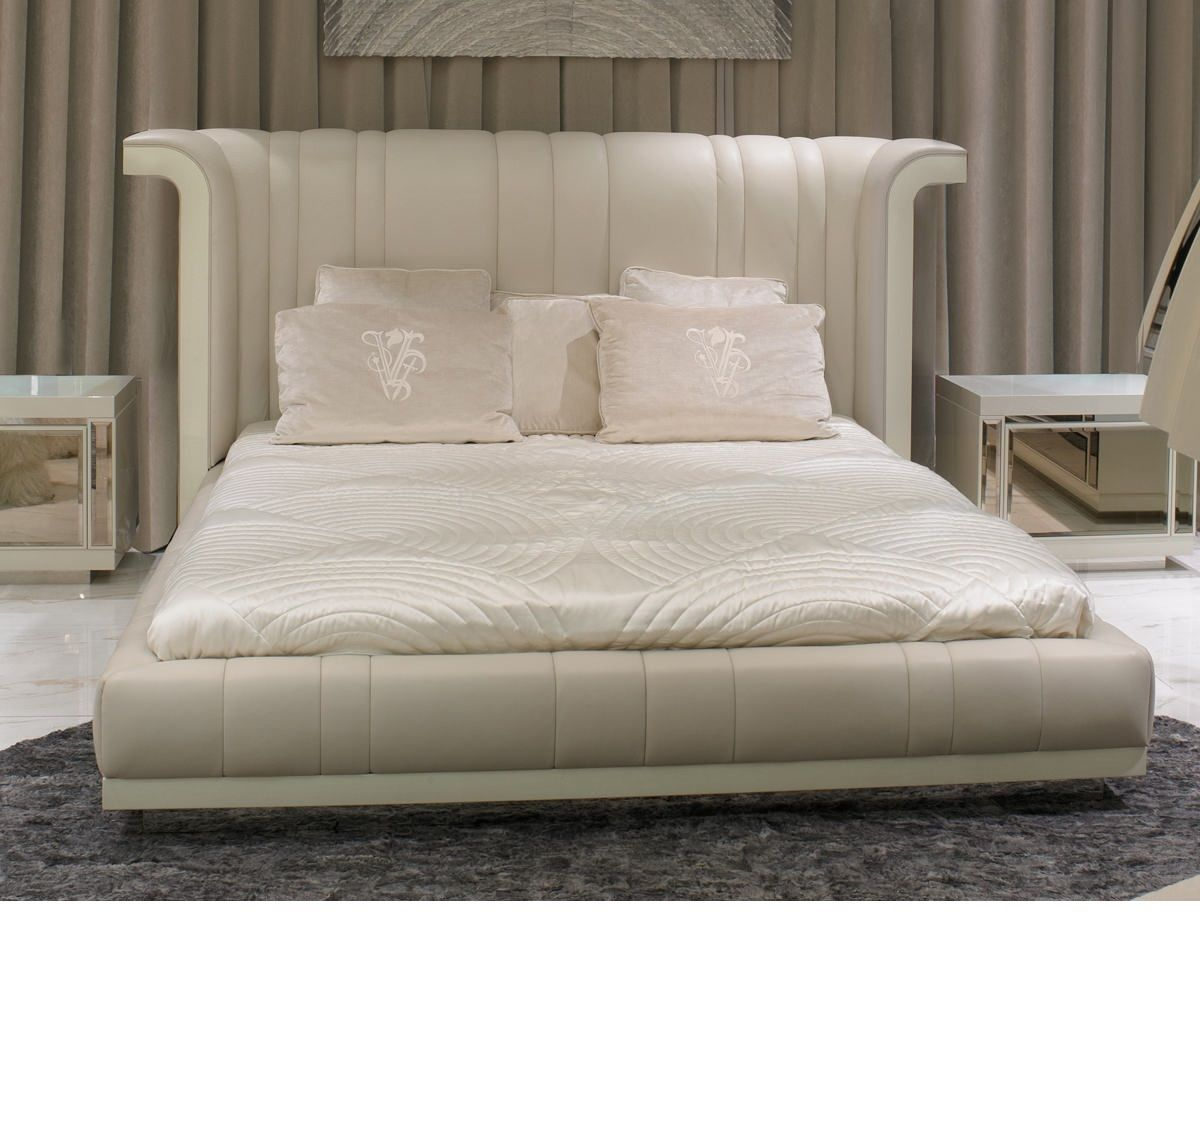 Luxury Bedroom Furniture Stores: InStyle-Decor.com Luxury Bedroom Interior Design